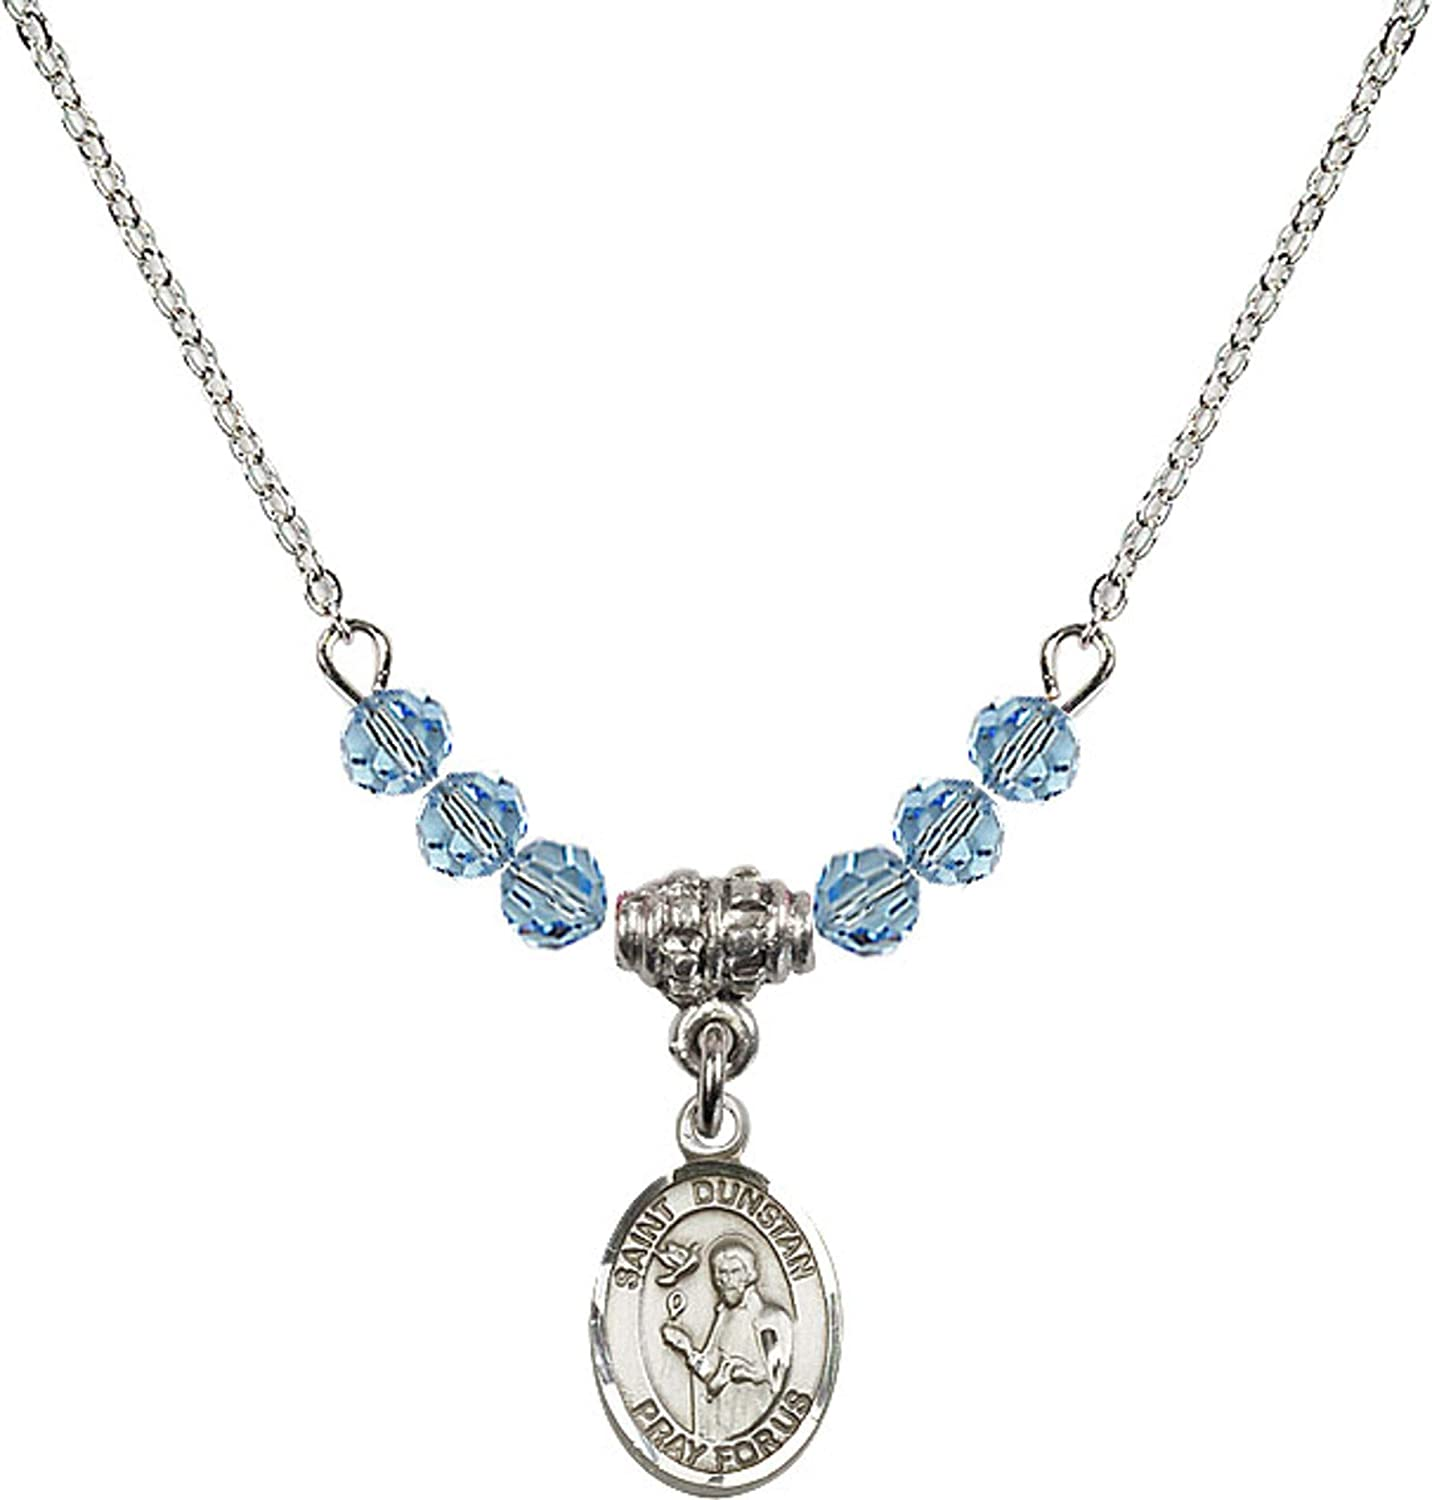 Bonyak Jewelry 18 Inch Rhodium Plated Necklace w// 4mm Blue March Birth Month Stone Beads and Saint Dunstan Charm